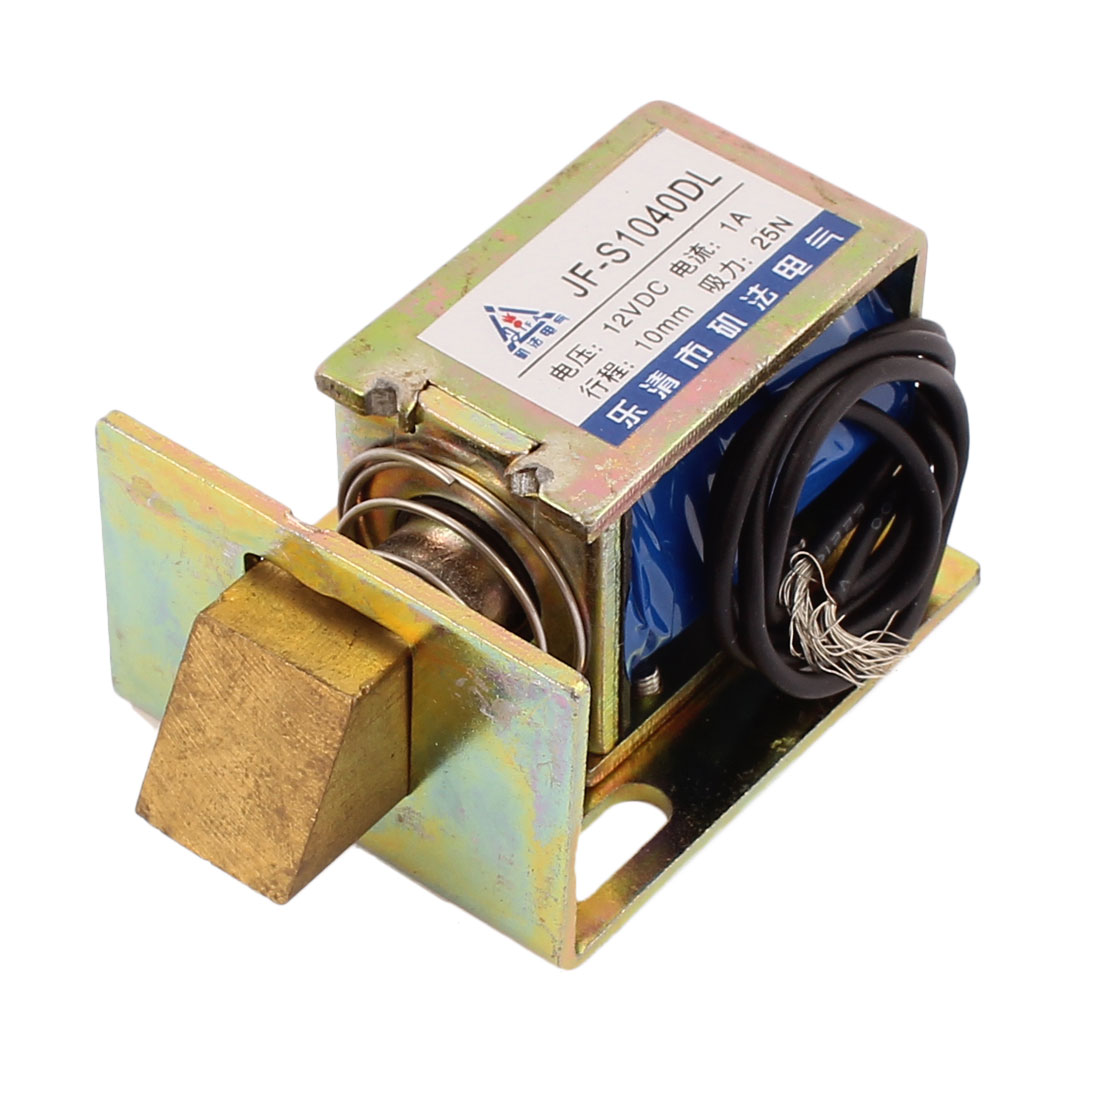 JF-S1040DL DC 12V 1A Pull Push Type Open Frame Solenoid Electromagnet for Locks